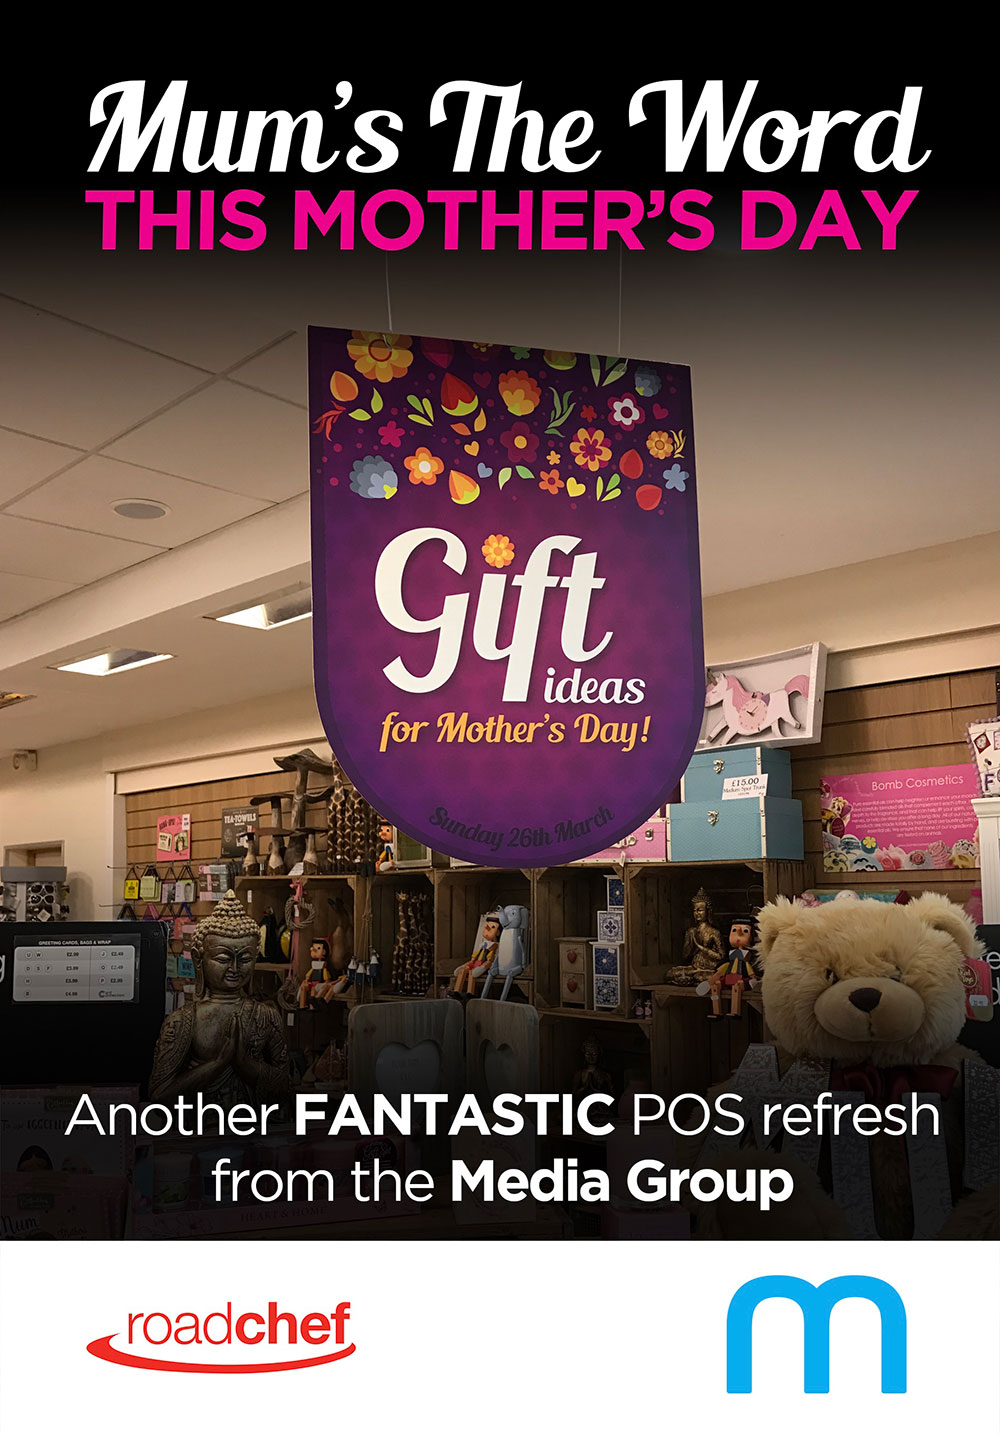 MothersDayHanger_InSitu_VISUAL